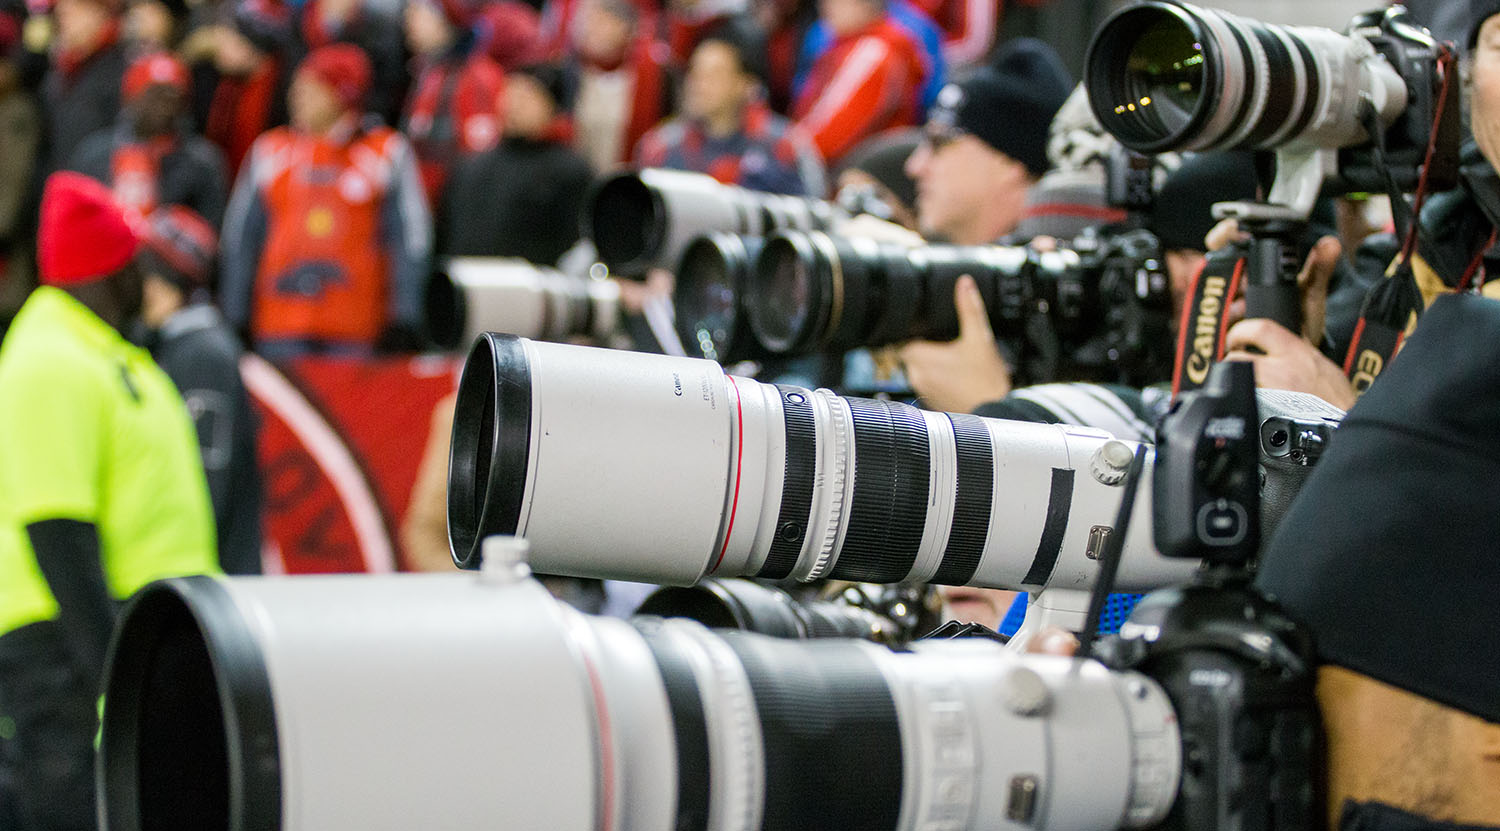 Media from various North American media outlets fill the south end to cover the 2017 MLS Cup Final.Image by Dennis Marciniak of denMAR Media.